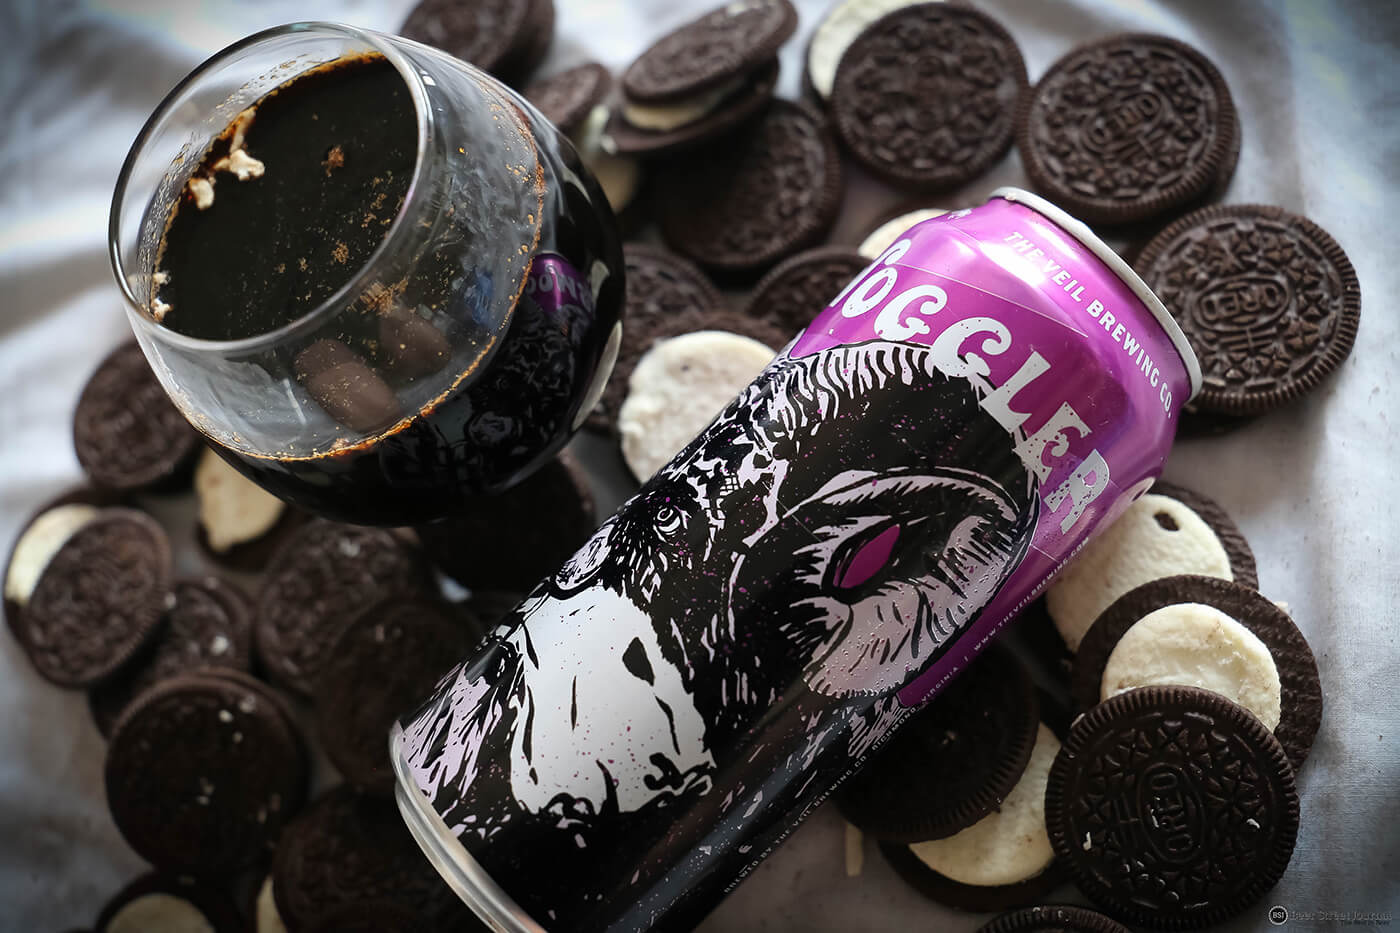 The Veil Hornswoggler with Oreo